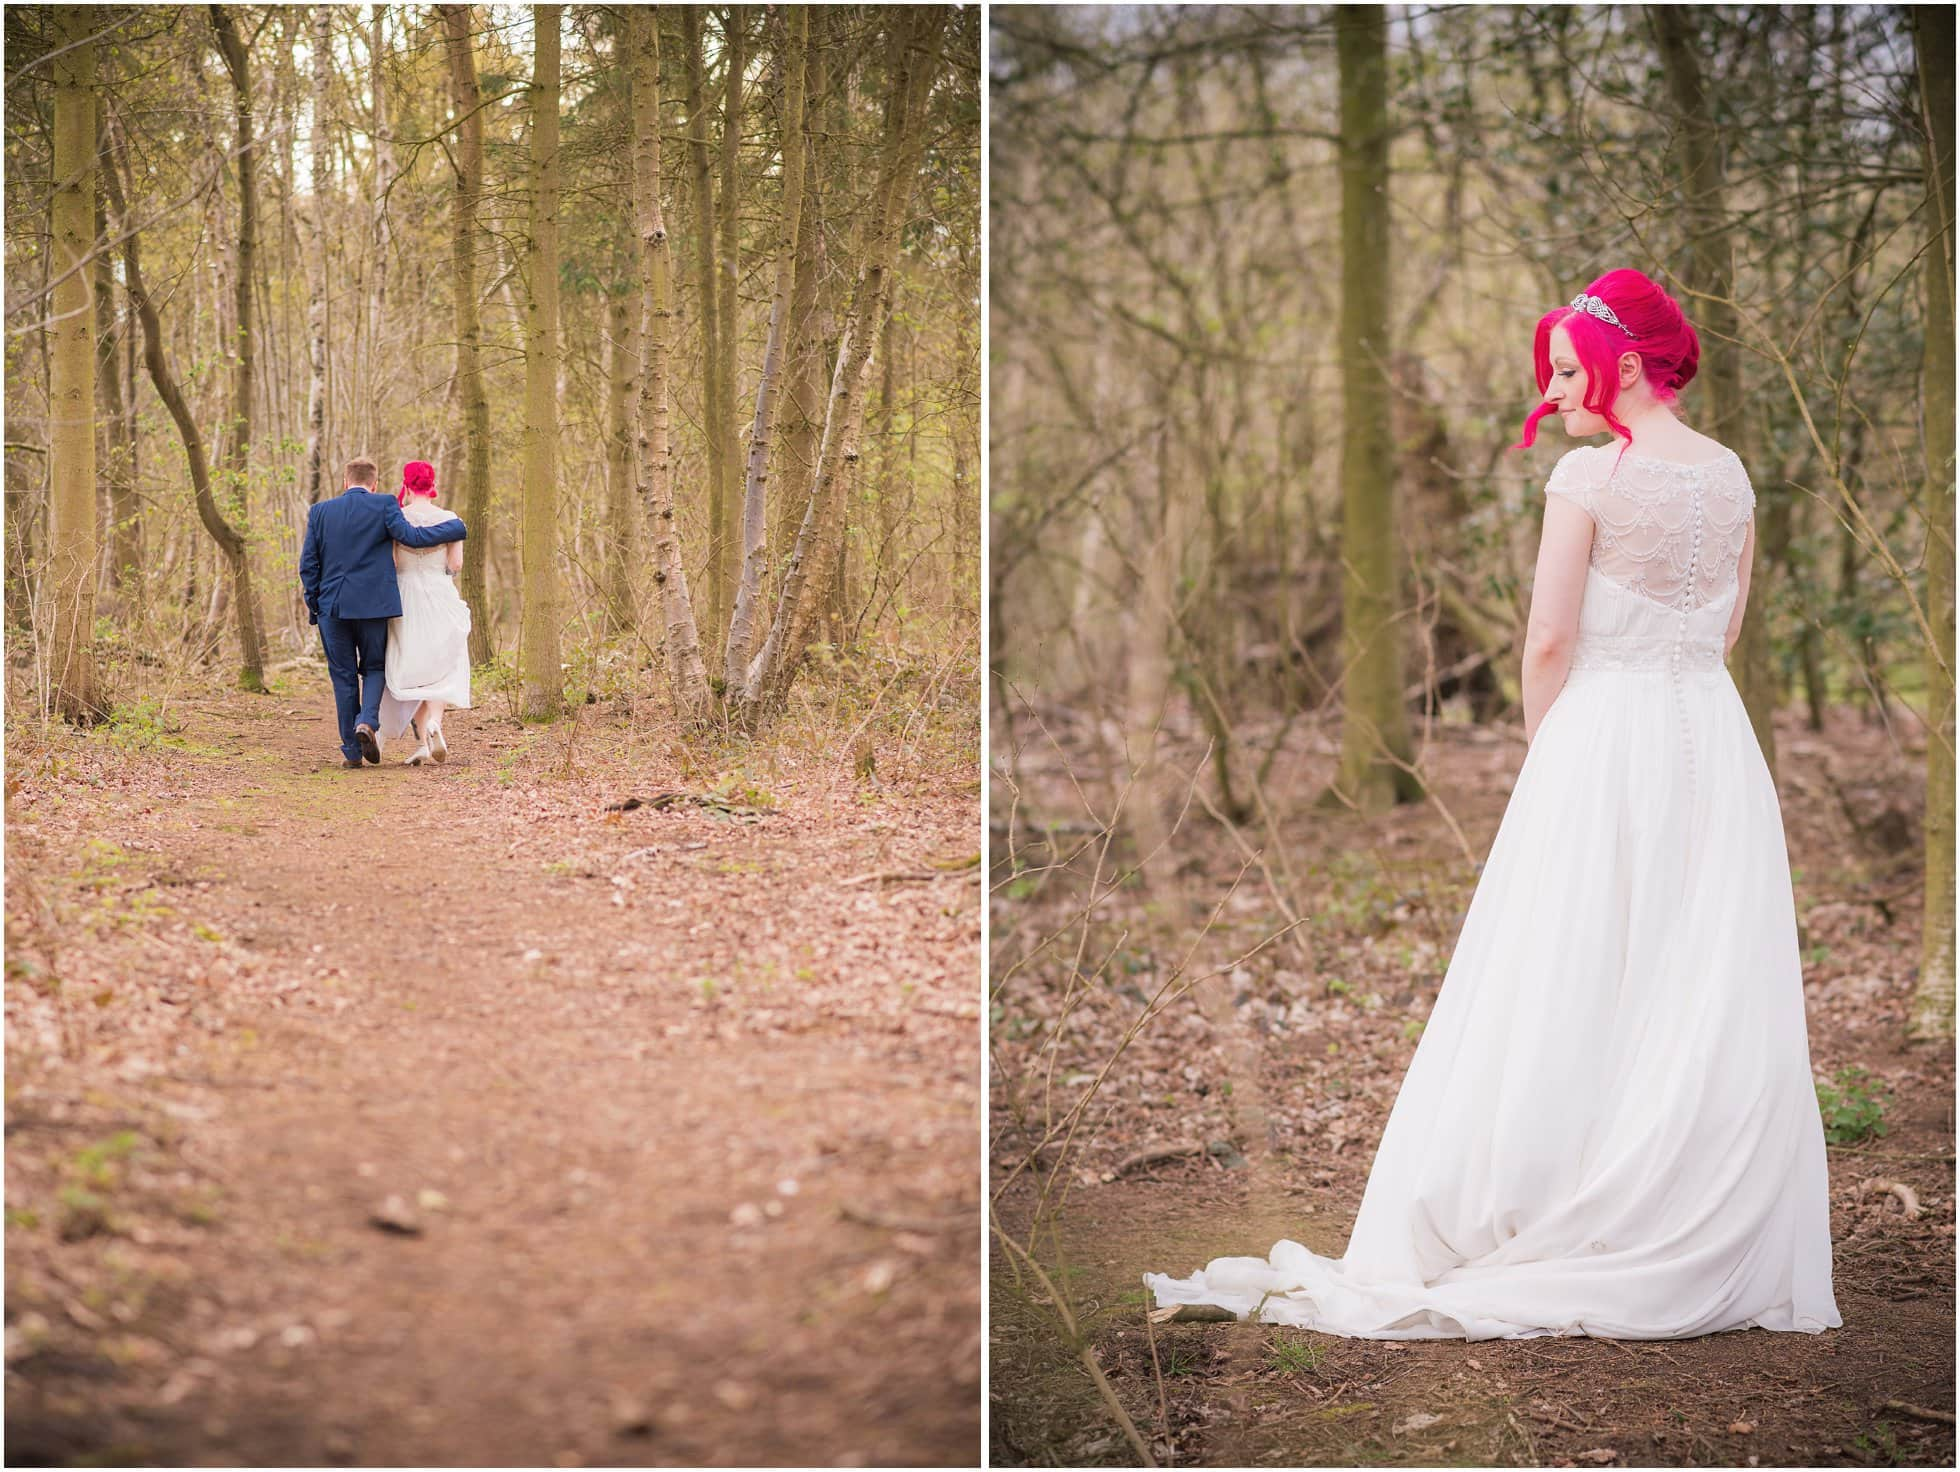 Bright pink hair bride looking awesome in the woods